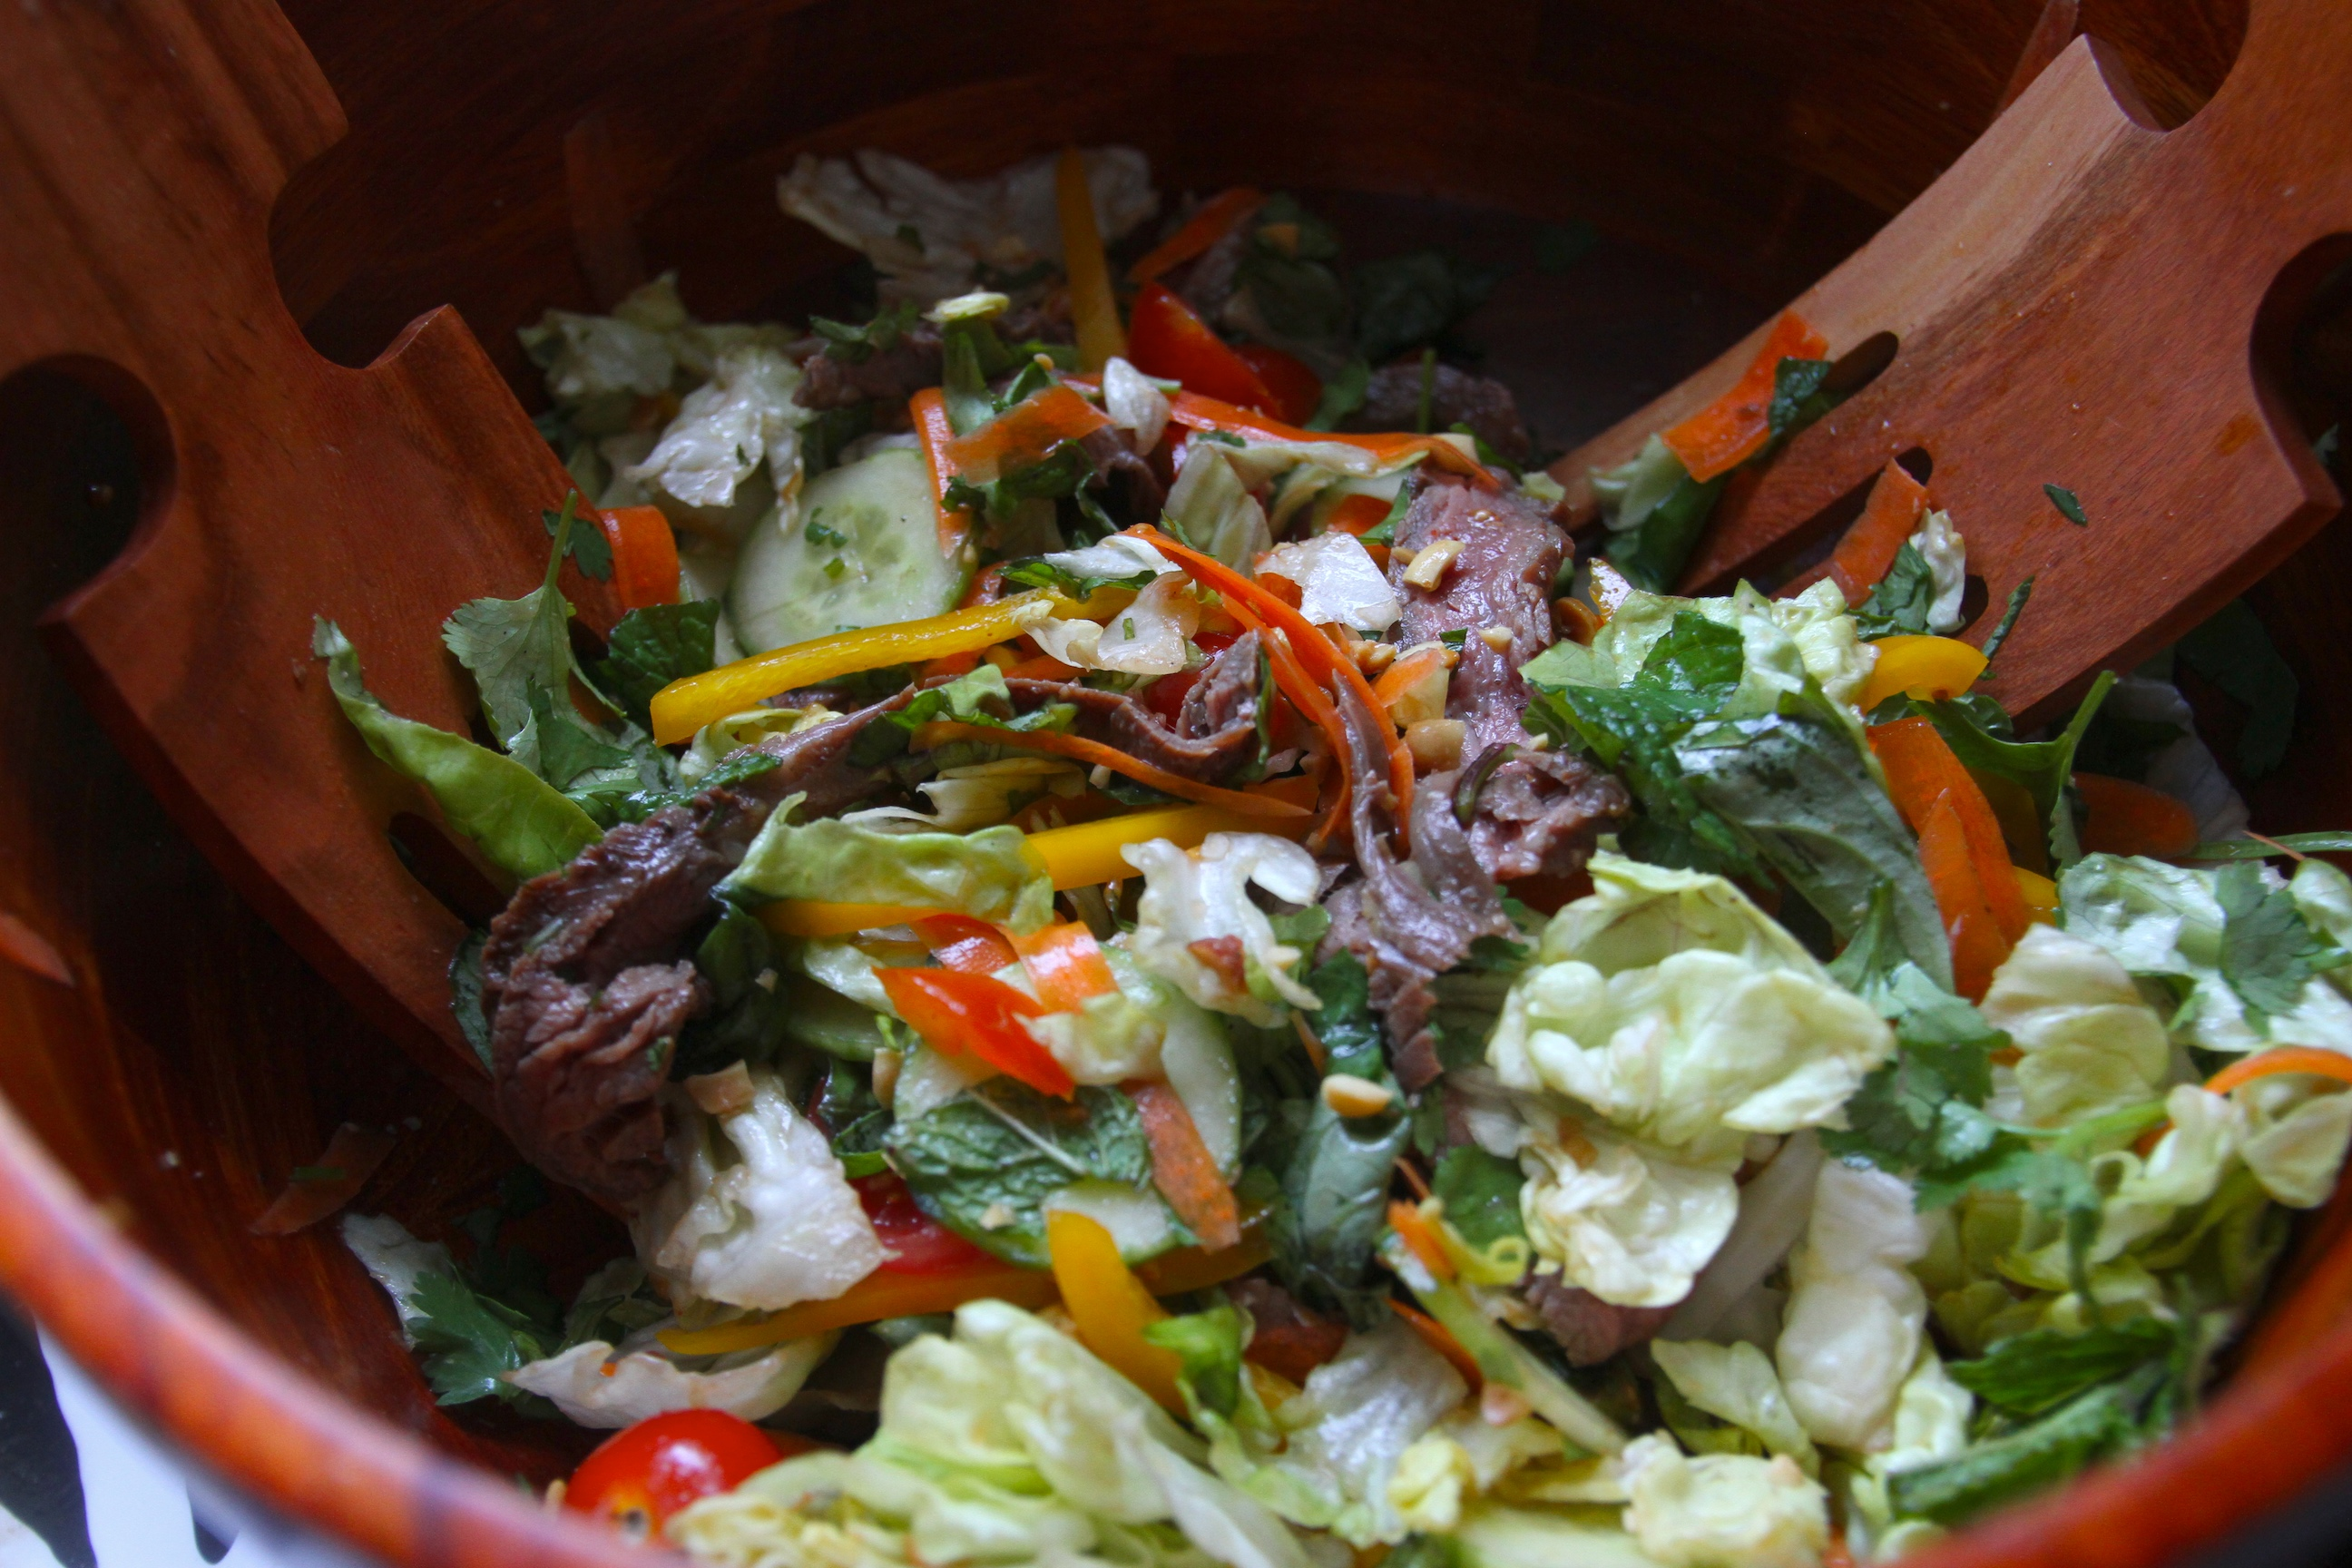 And you have a Thai Beef Salad with Herbs.